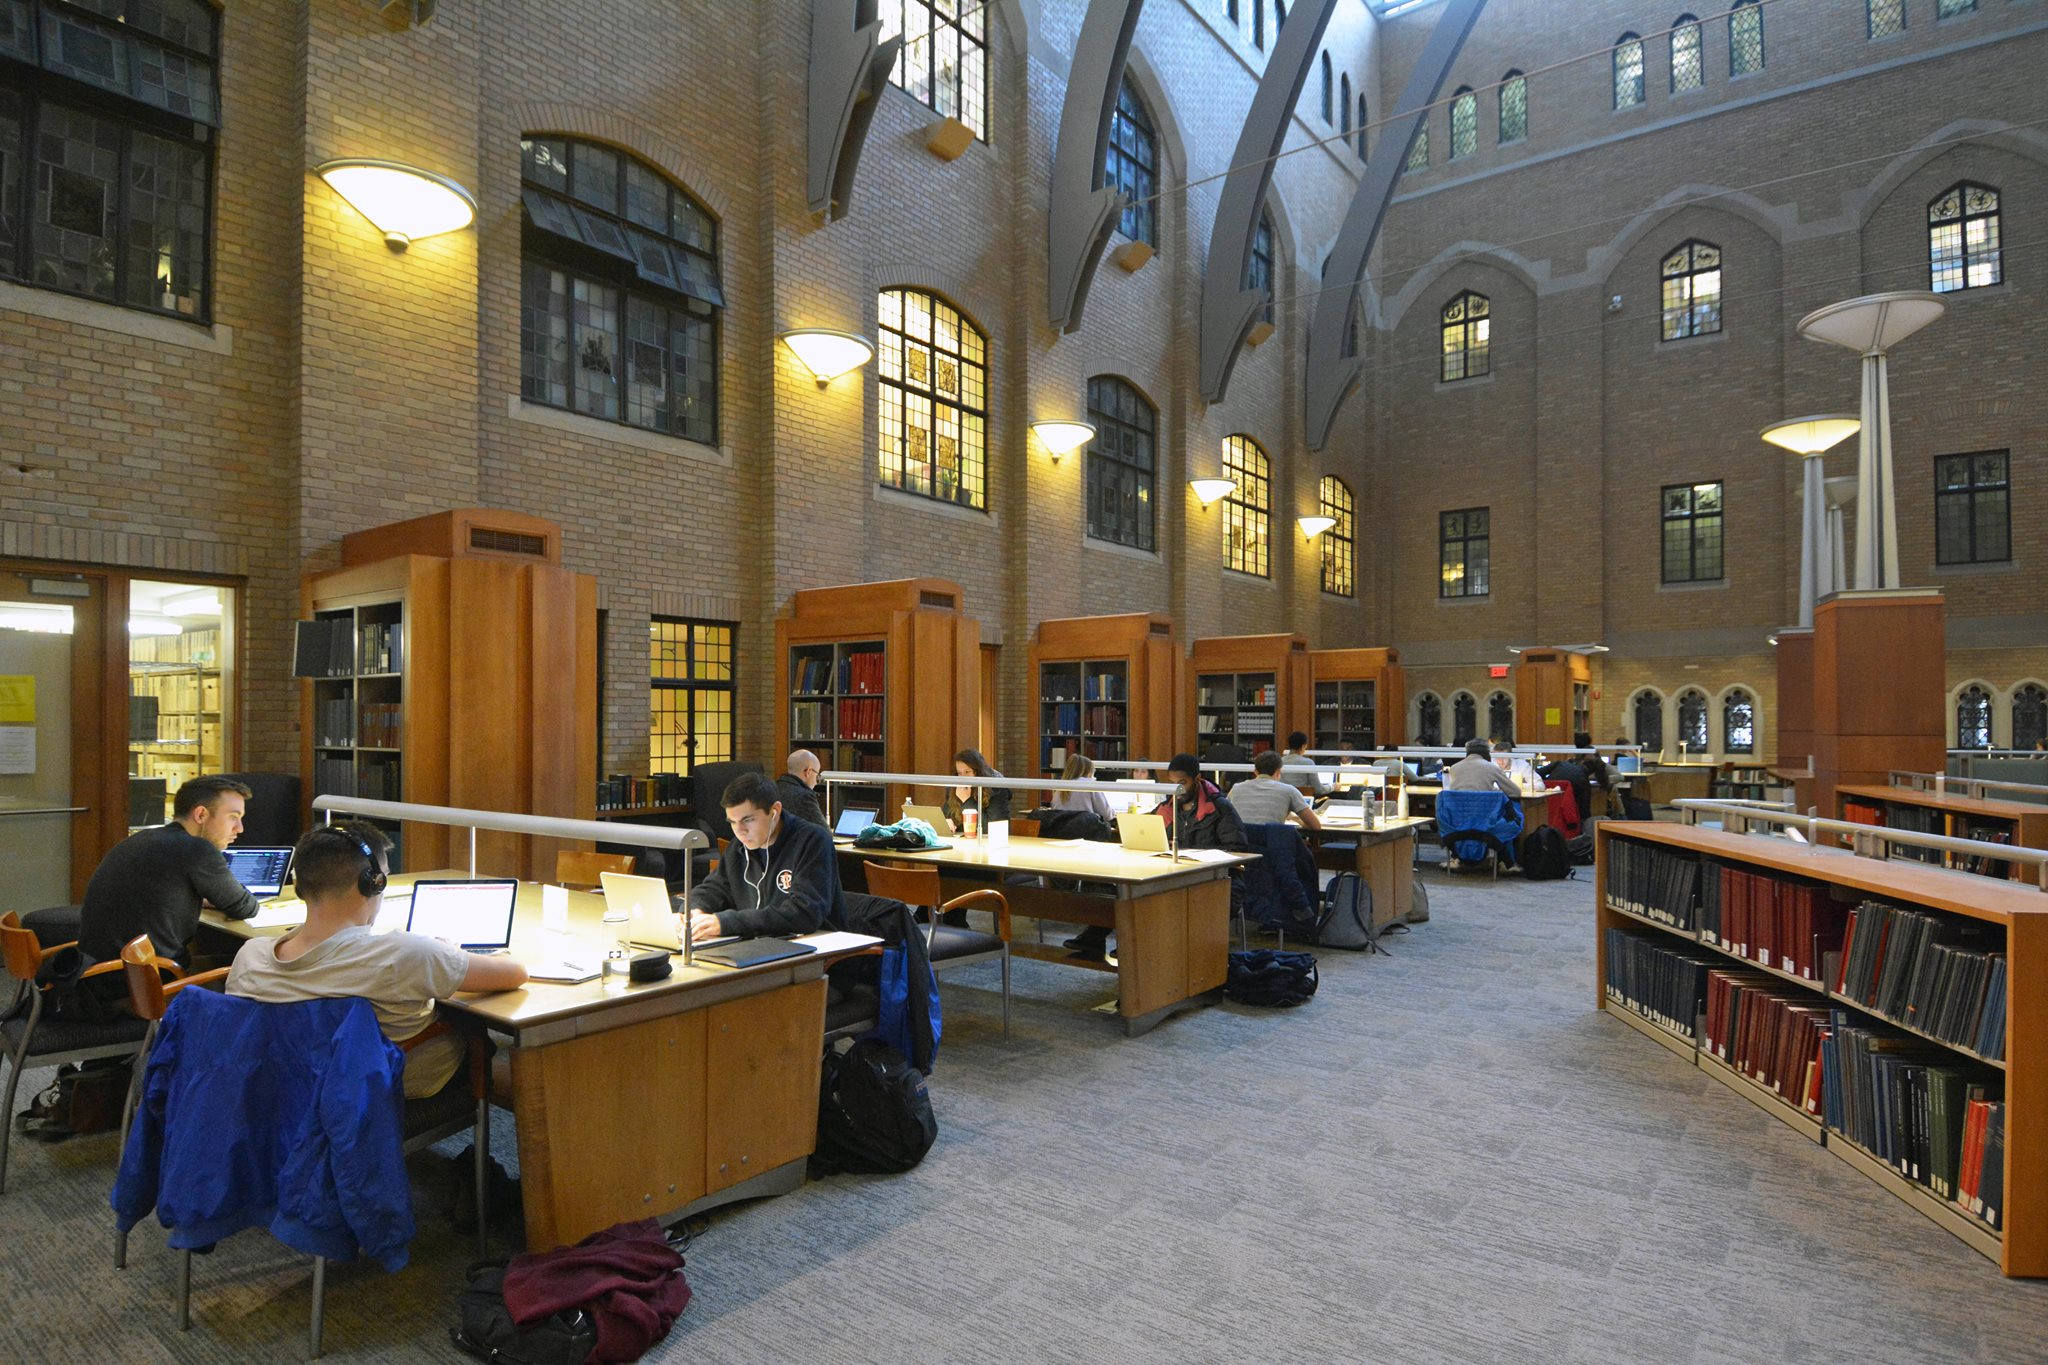 Students studying in the Gilmore Music Library